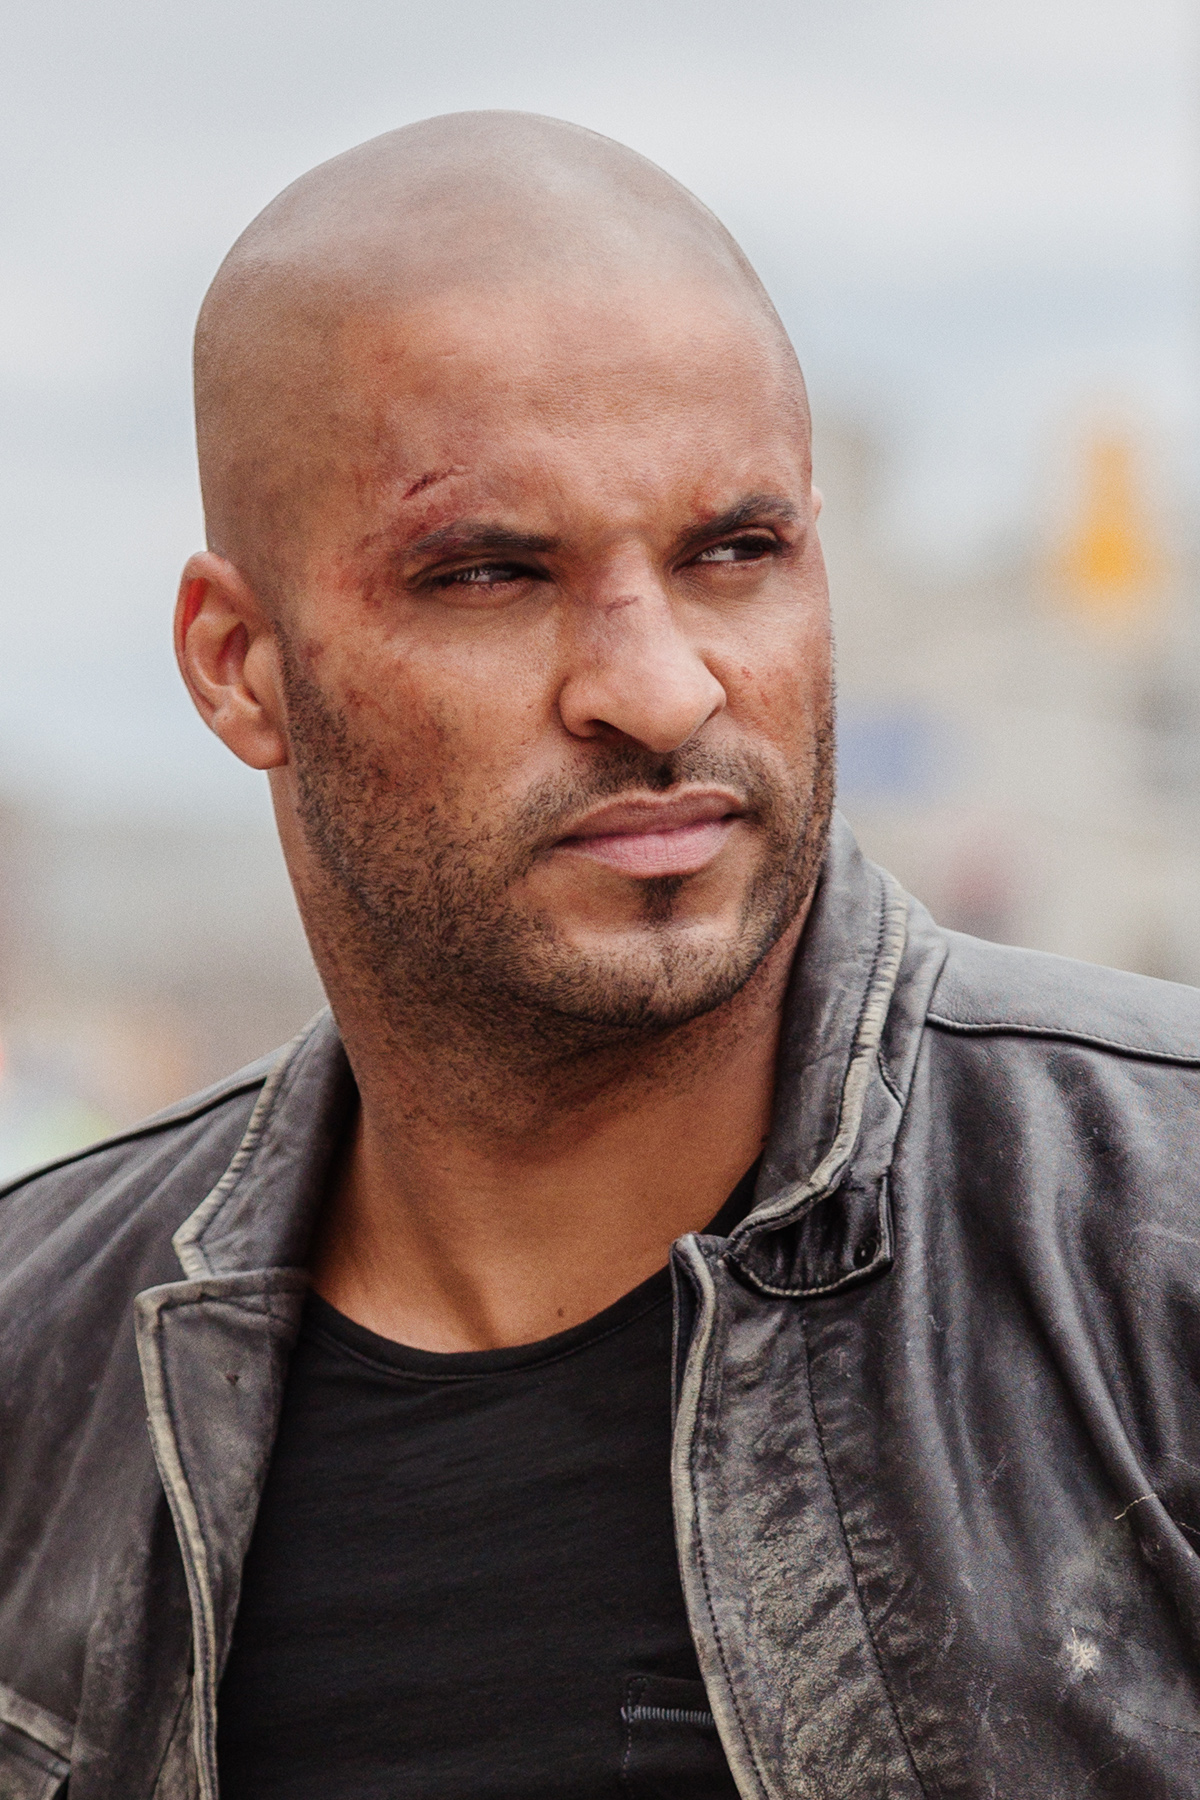 Exclusive: Ricky Whittle's Ready To Take On 'American Gods